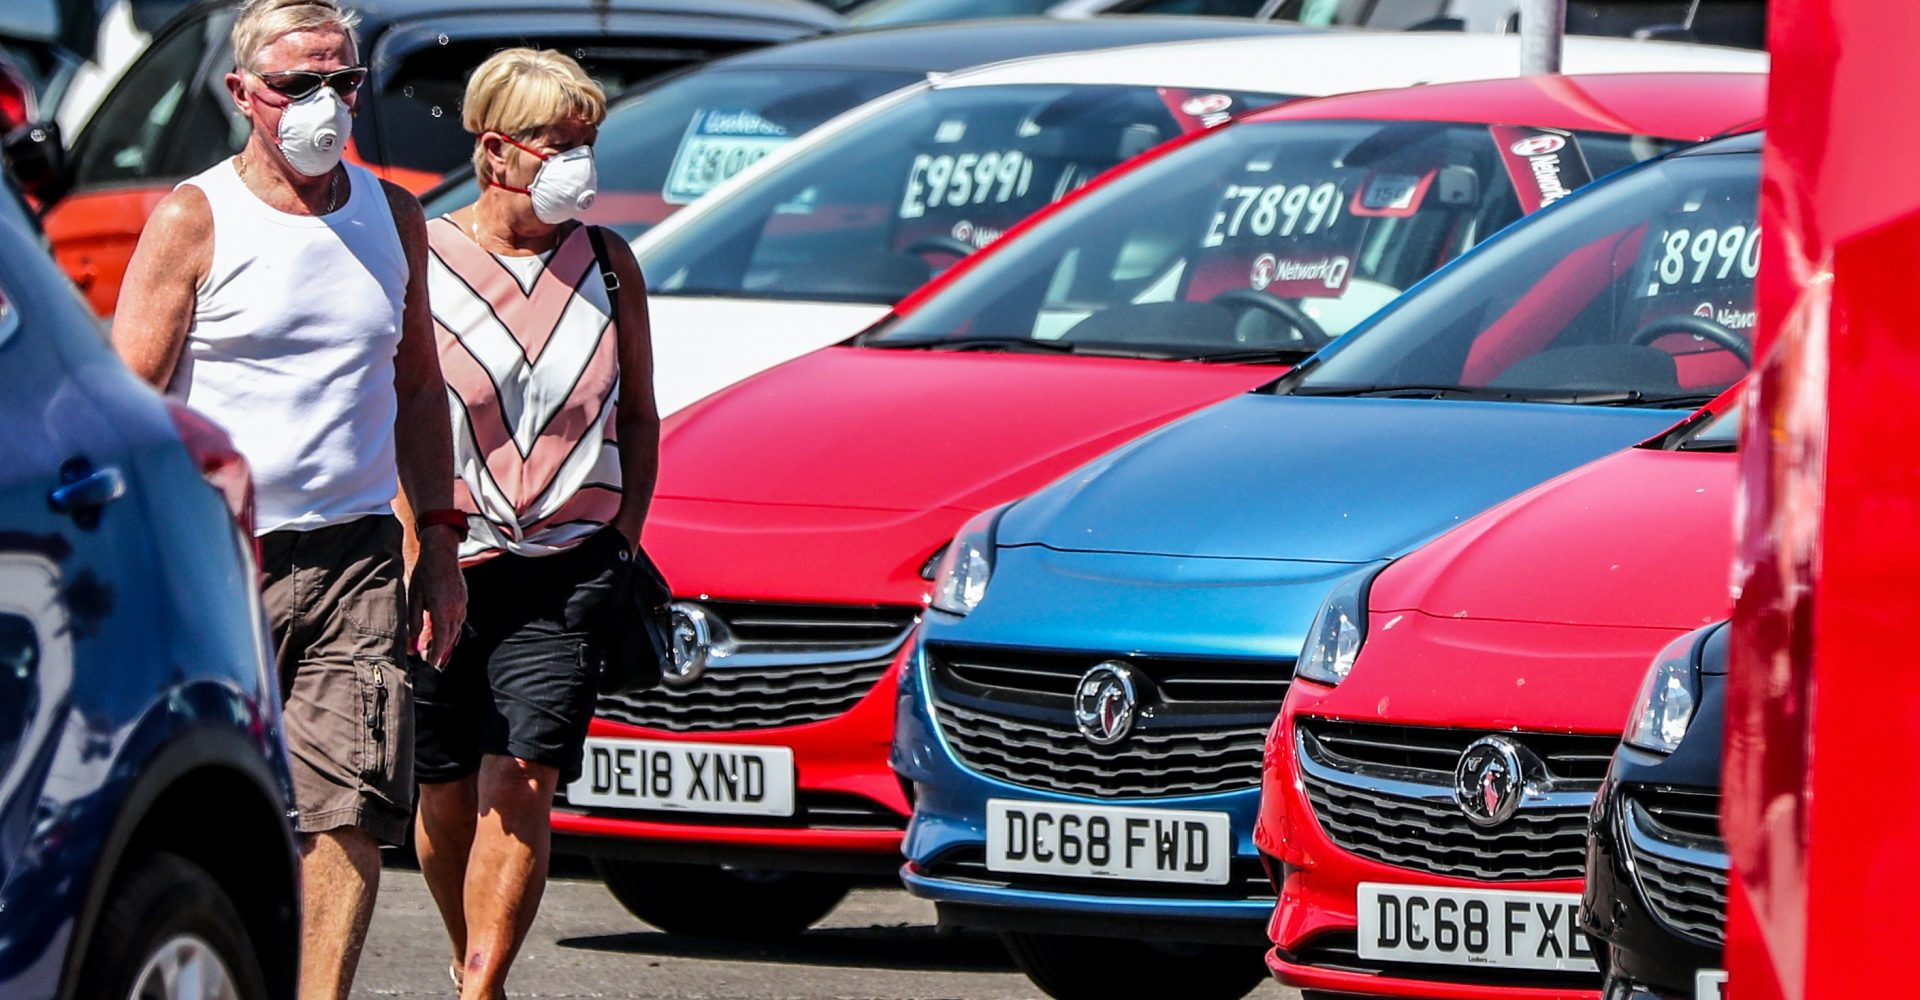 Lookers axing around 1,500 jobs and shutting car dealerships to slash costs